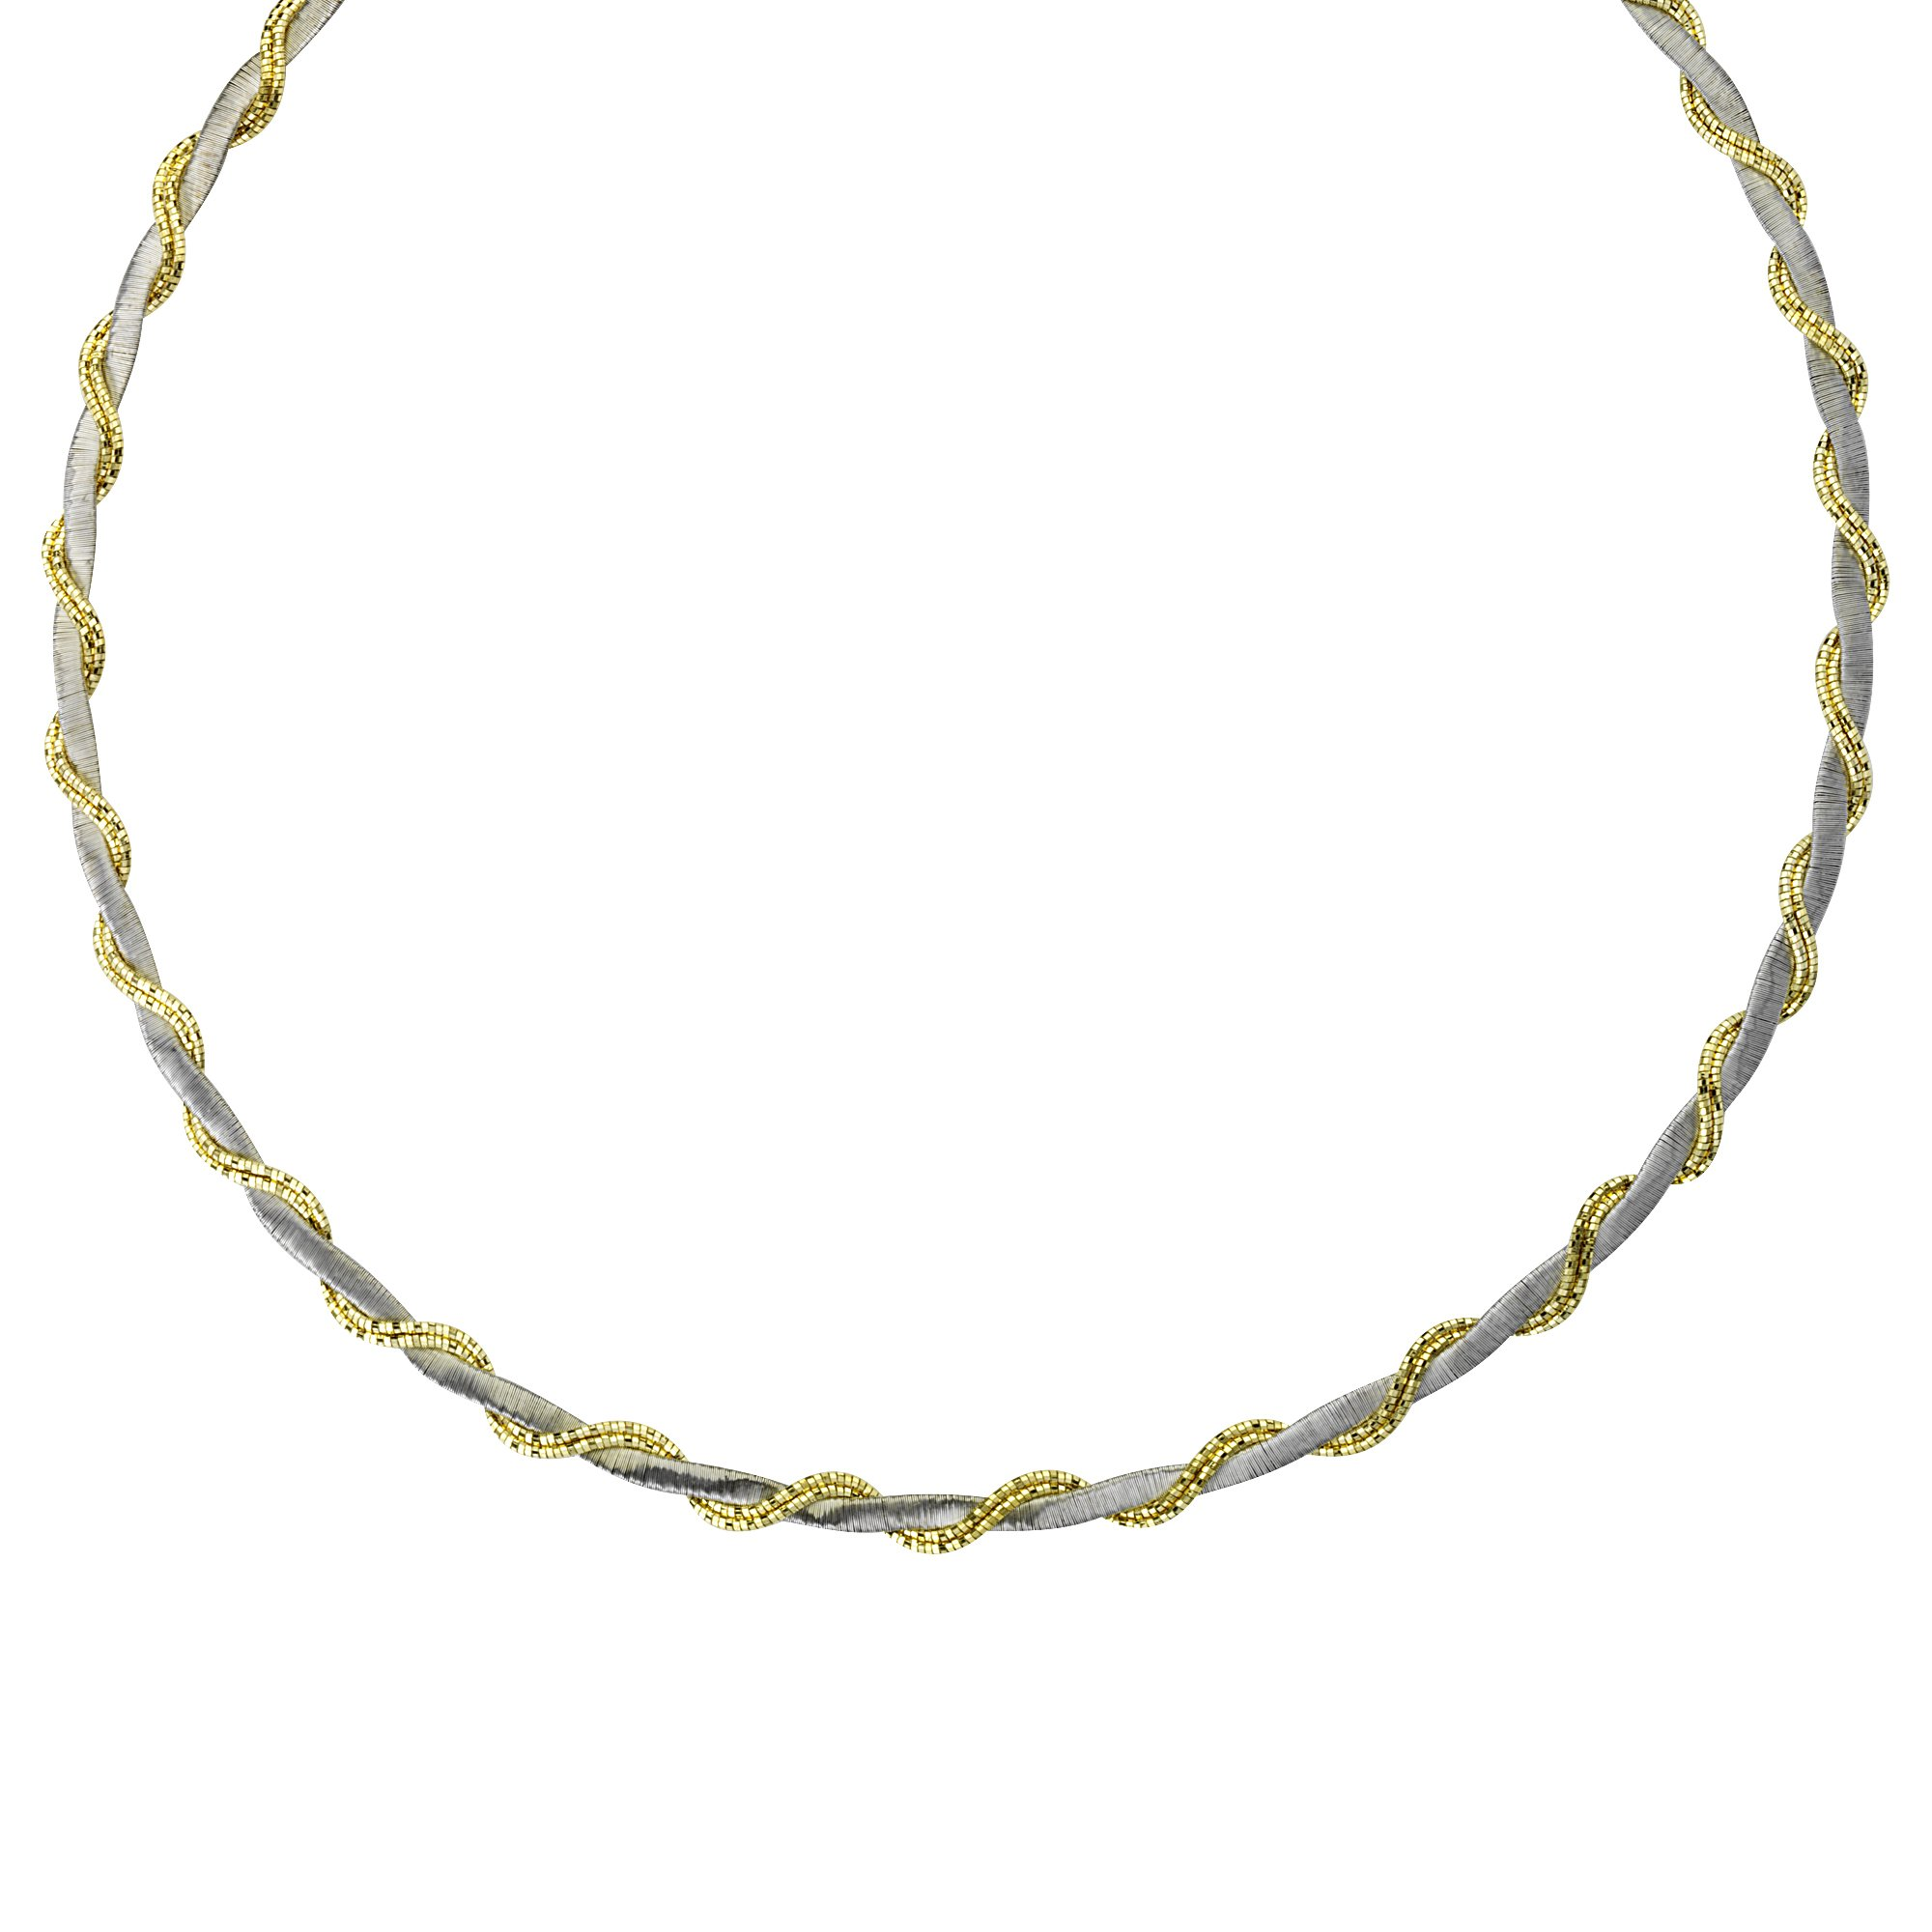 Two Tone Yellow and White Sterling Silver Omega Necklace Braided Vine Style